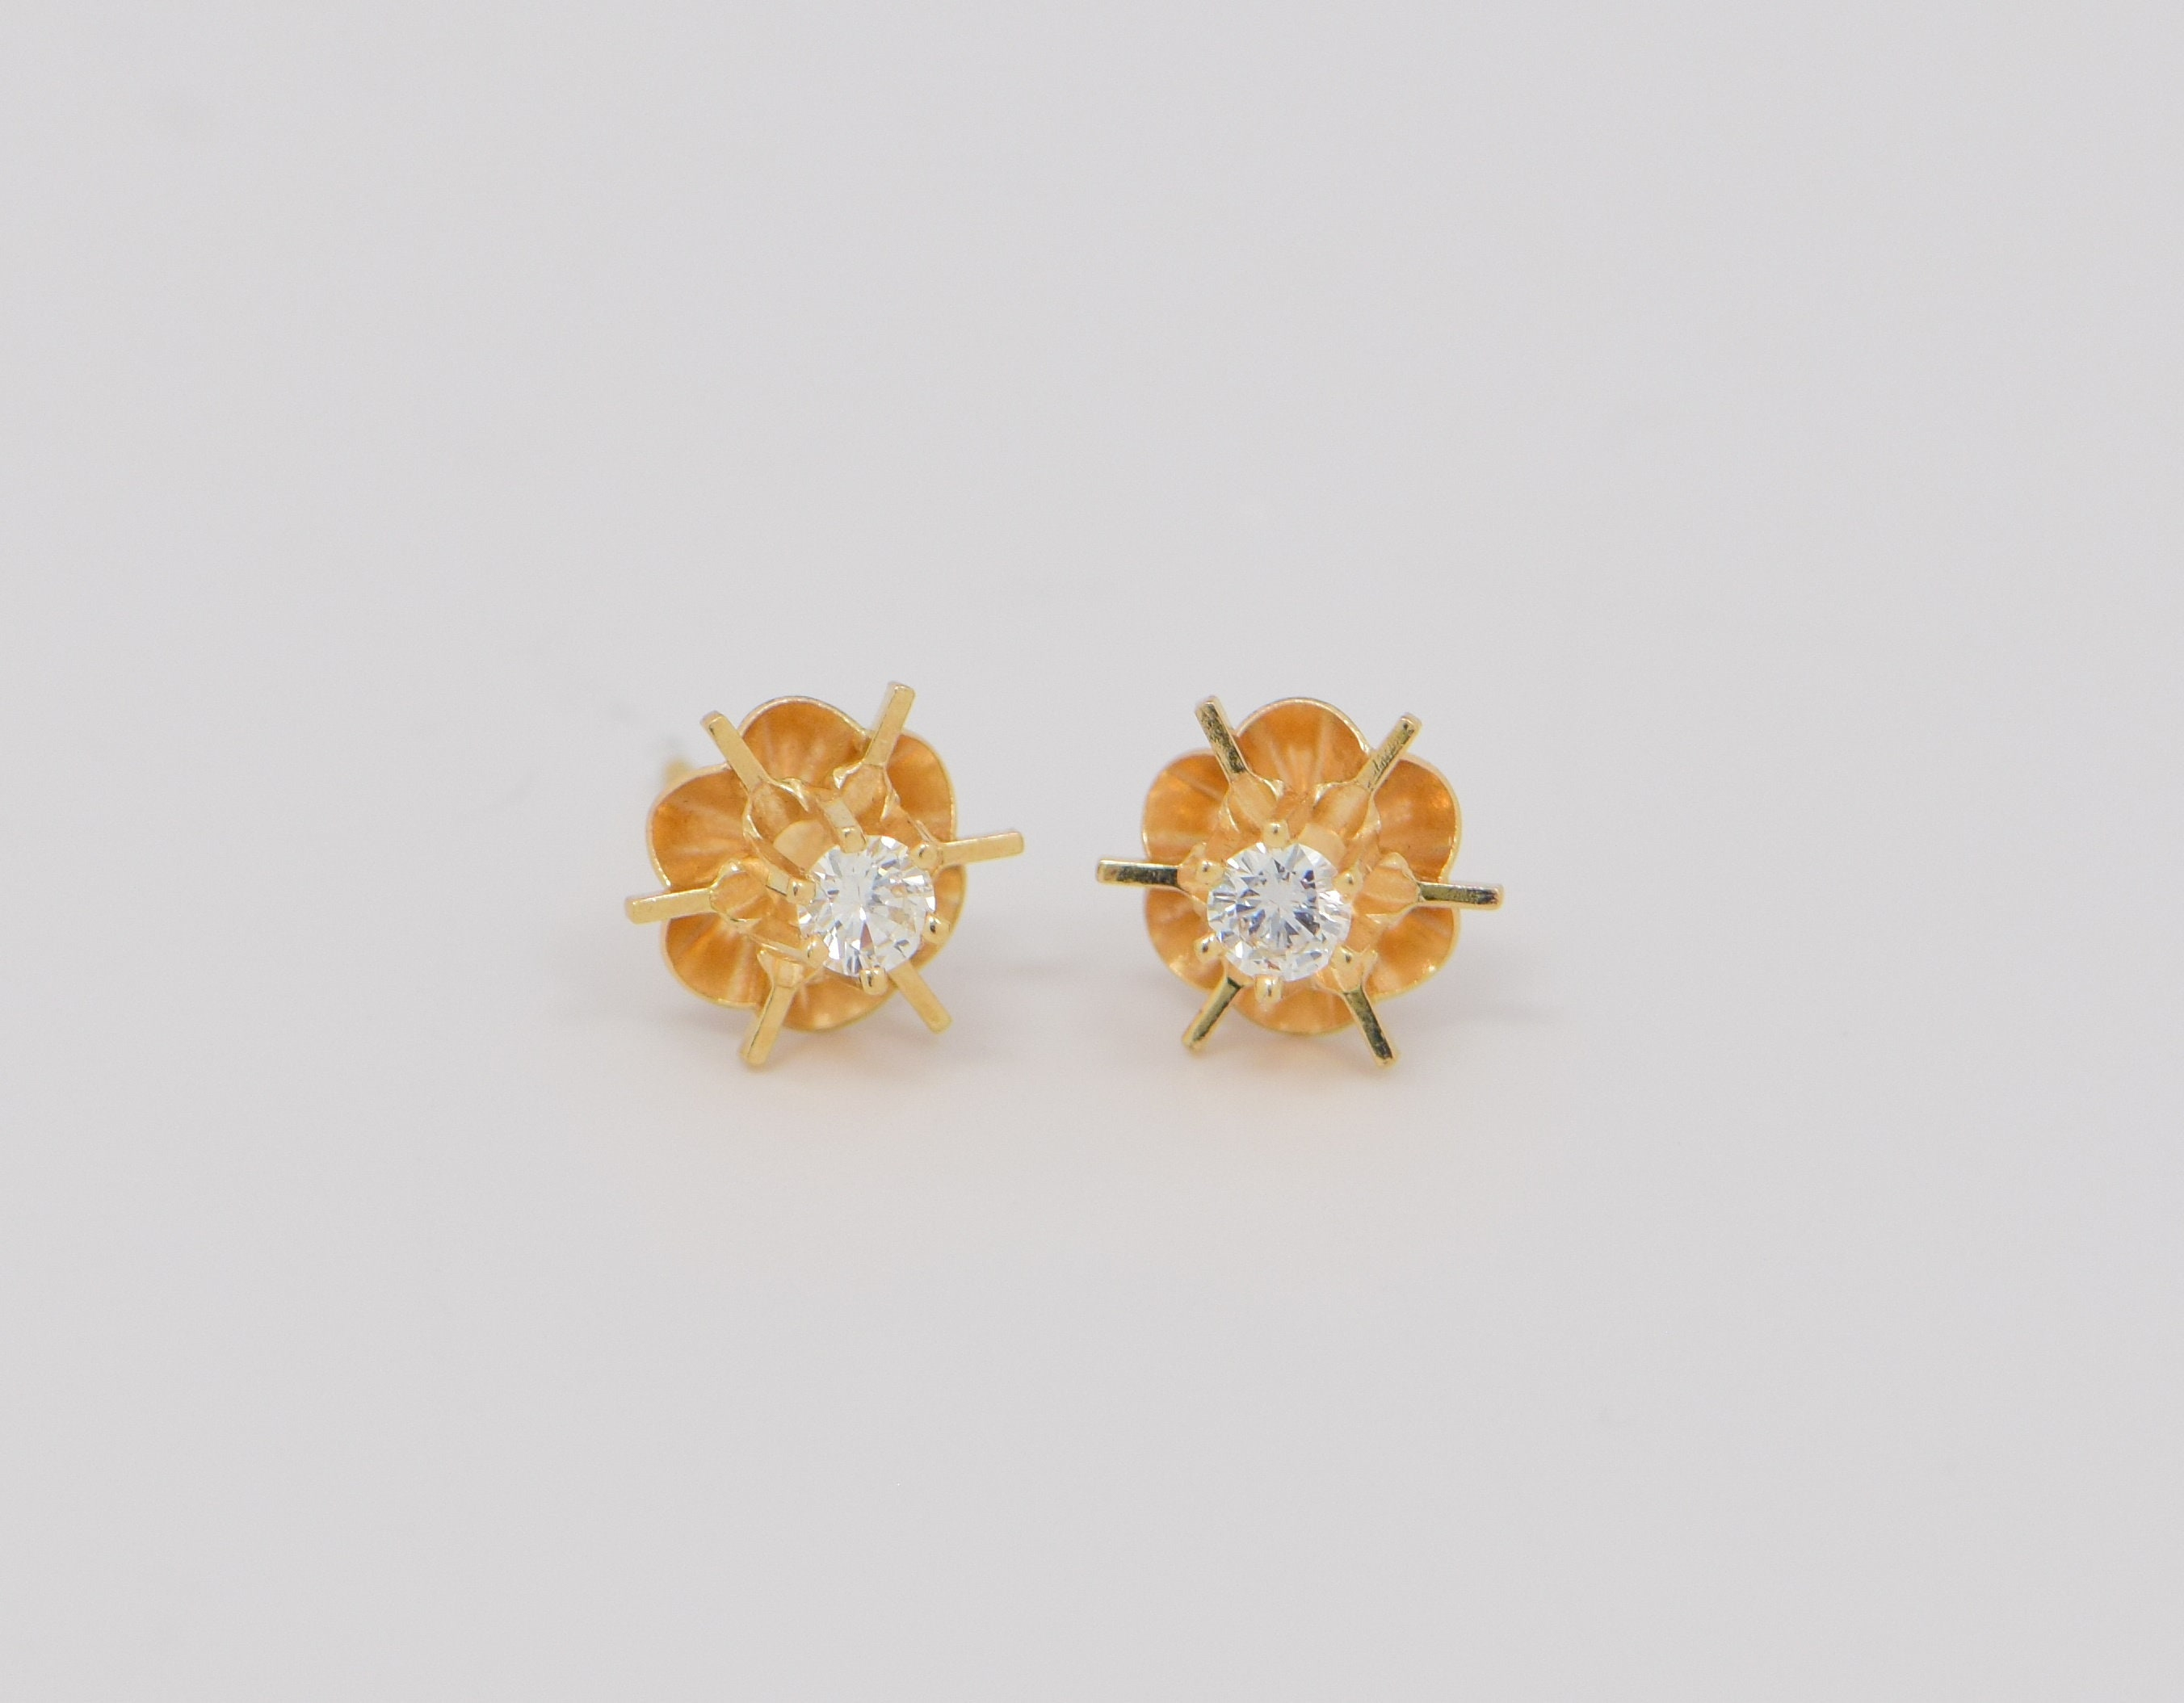 14K Yellow Gold Diamond Stud Earrings in Buttercup Settings